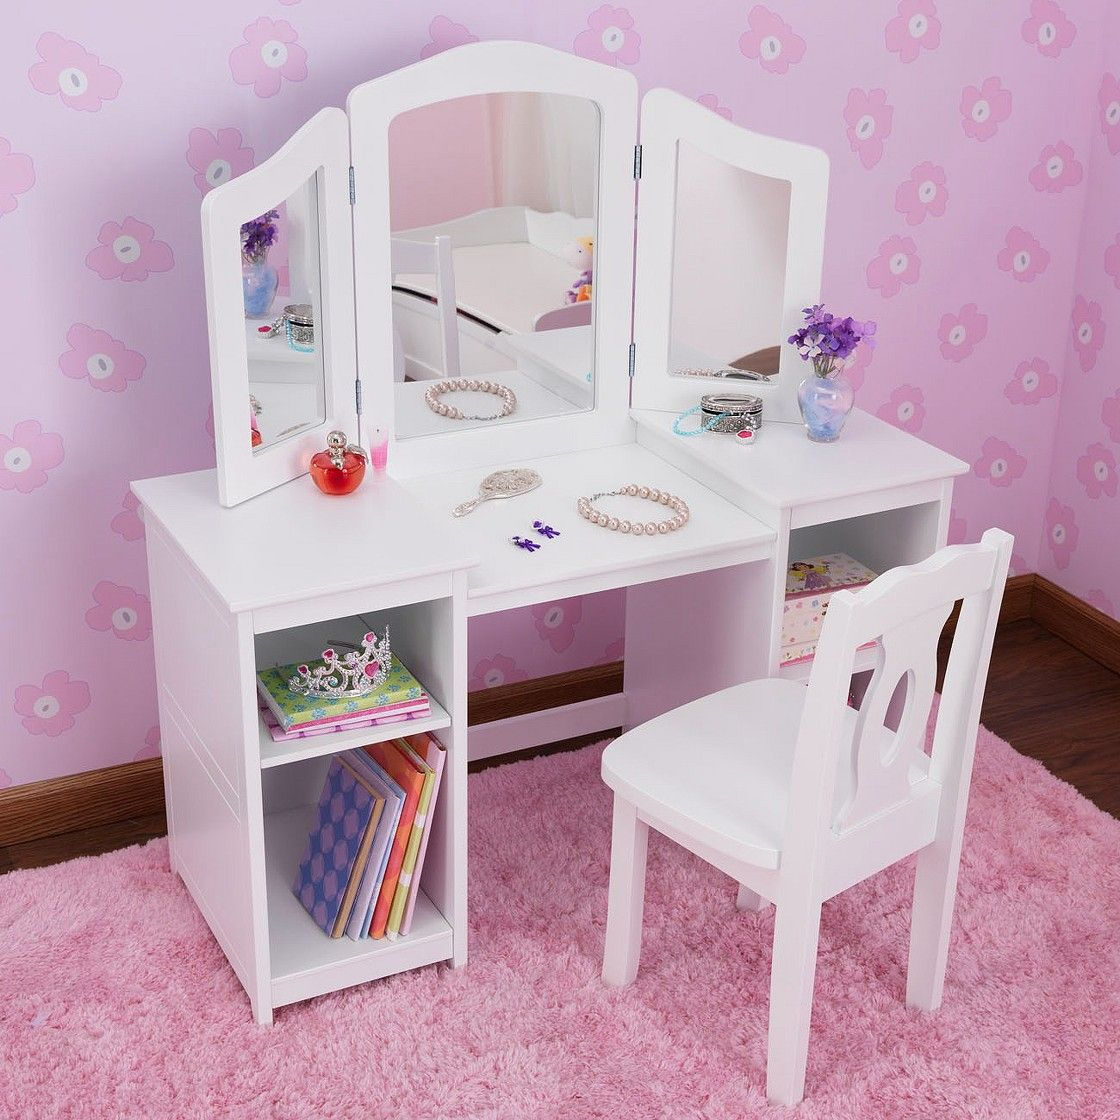 Kidkraft Deluxe Vanity Table With Chair - White Divas